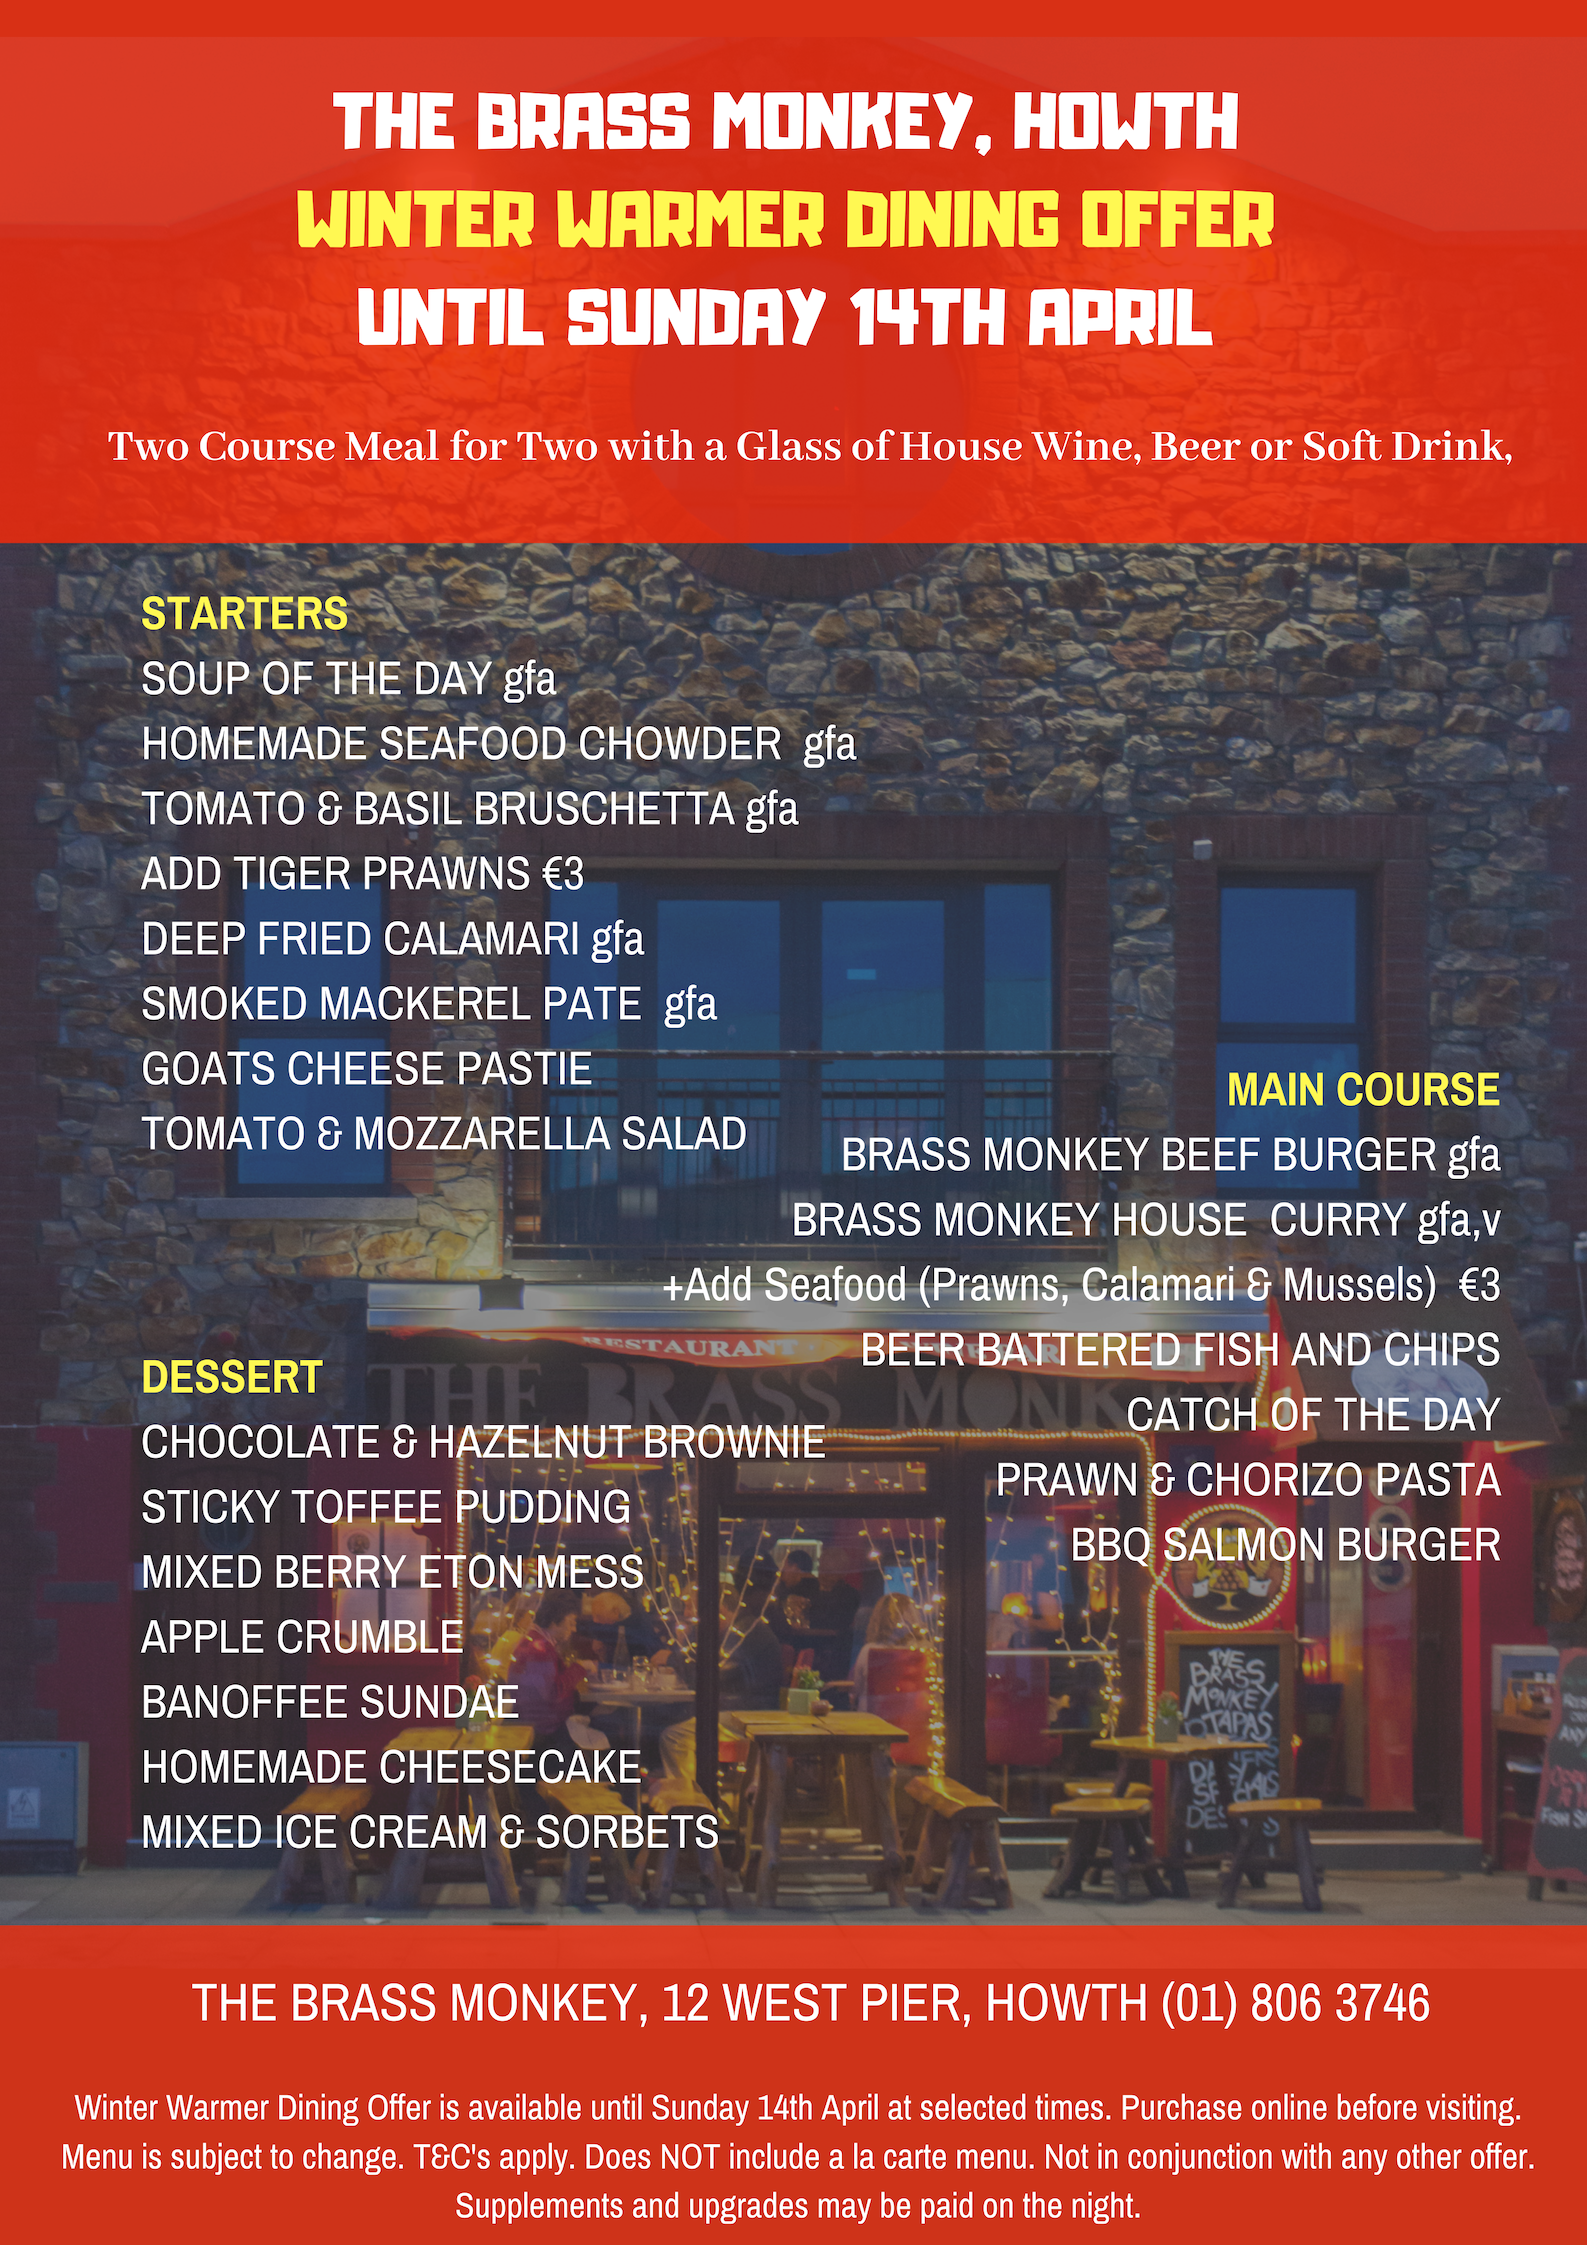 €45 Winter Warmer Dining Offer at The Brass Monkey, Howth